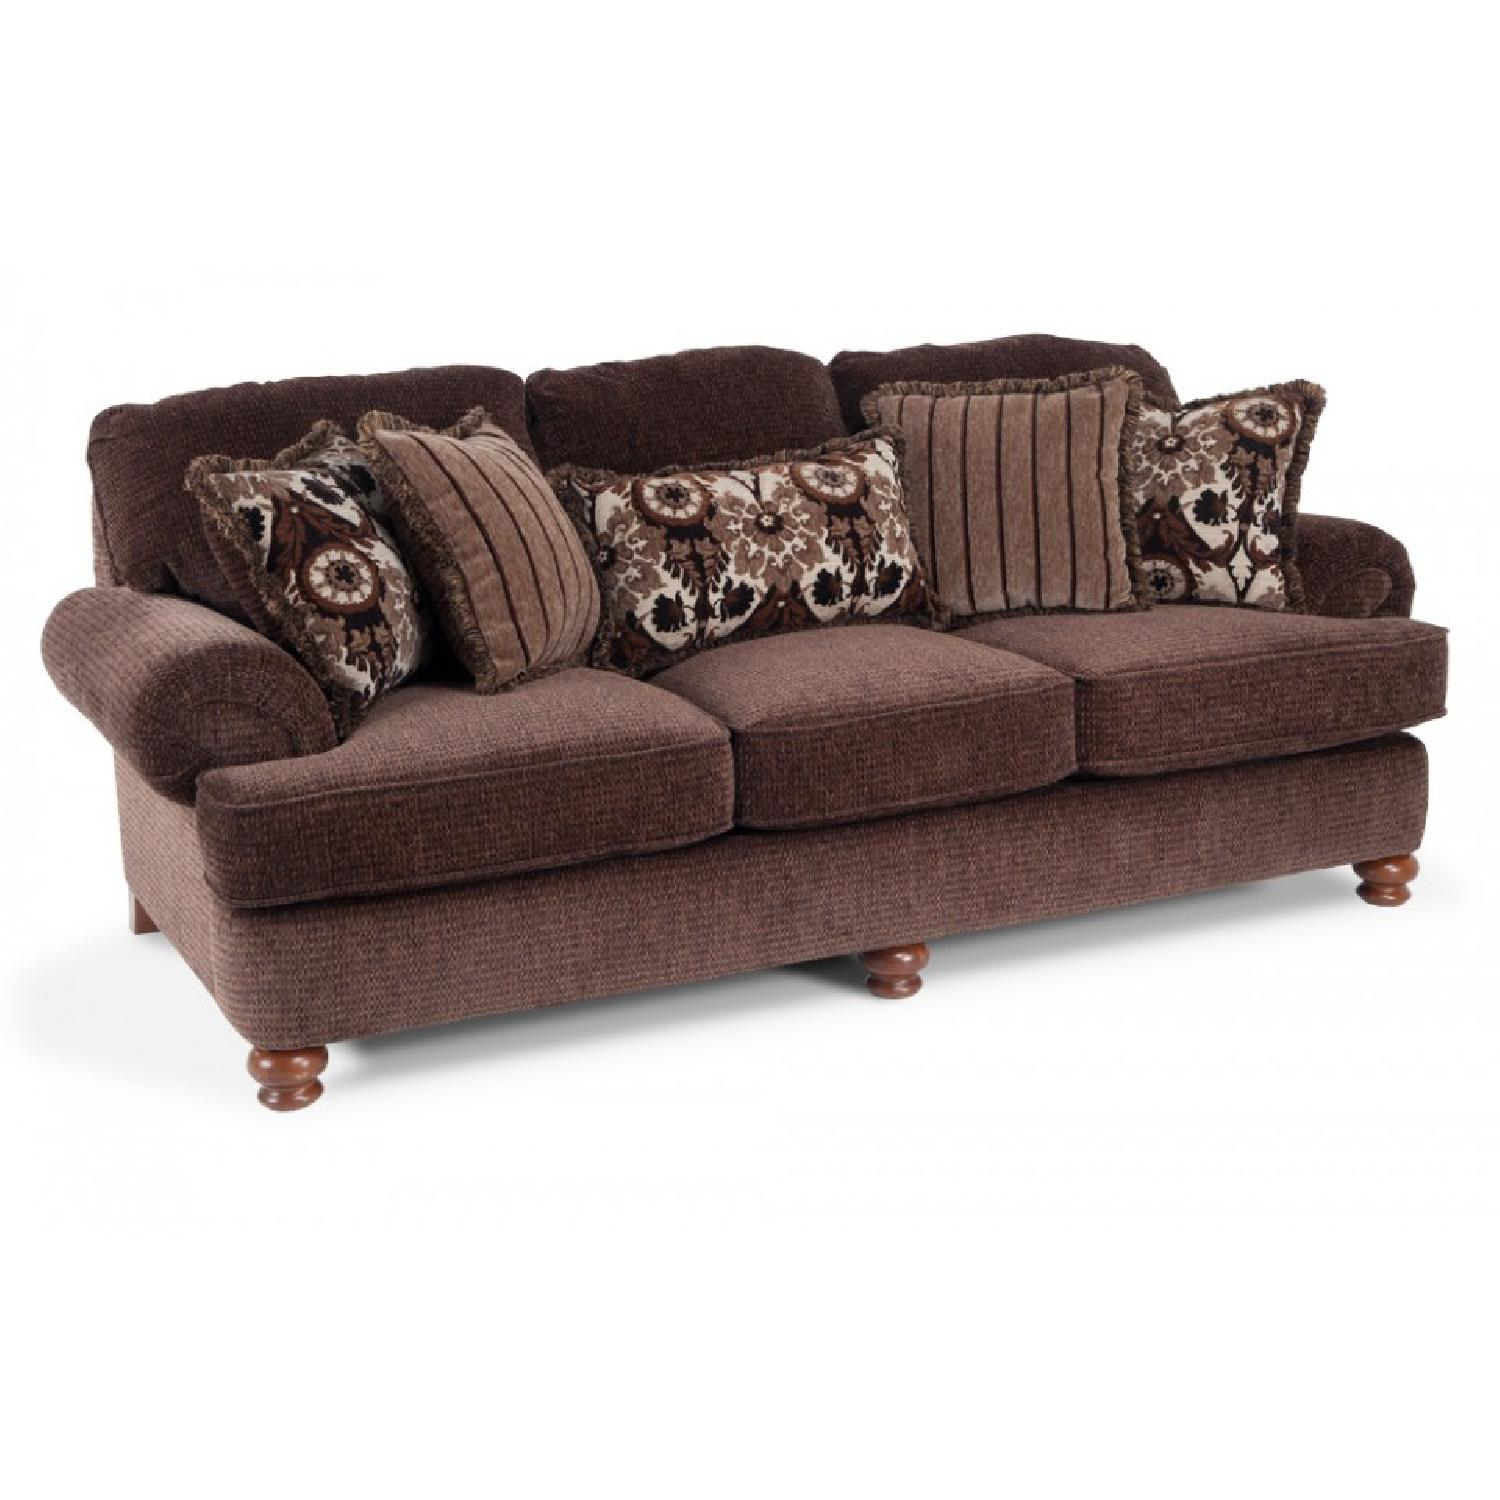 Bobs Leather 2 Seater Recliner w Console AptDeco